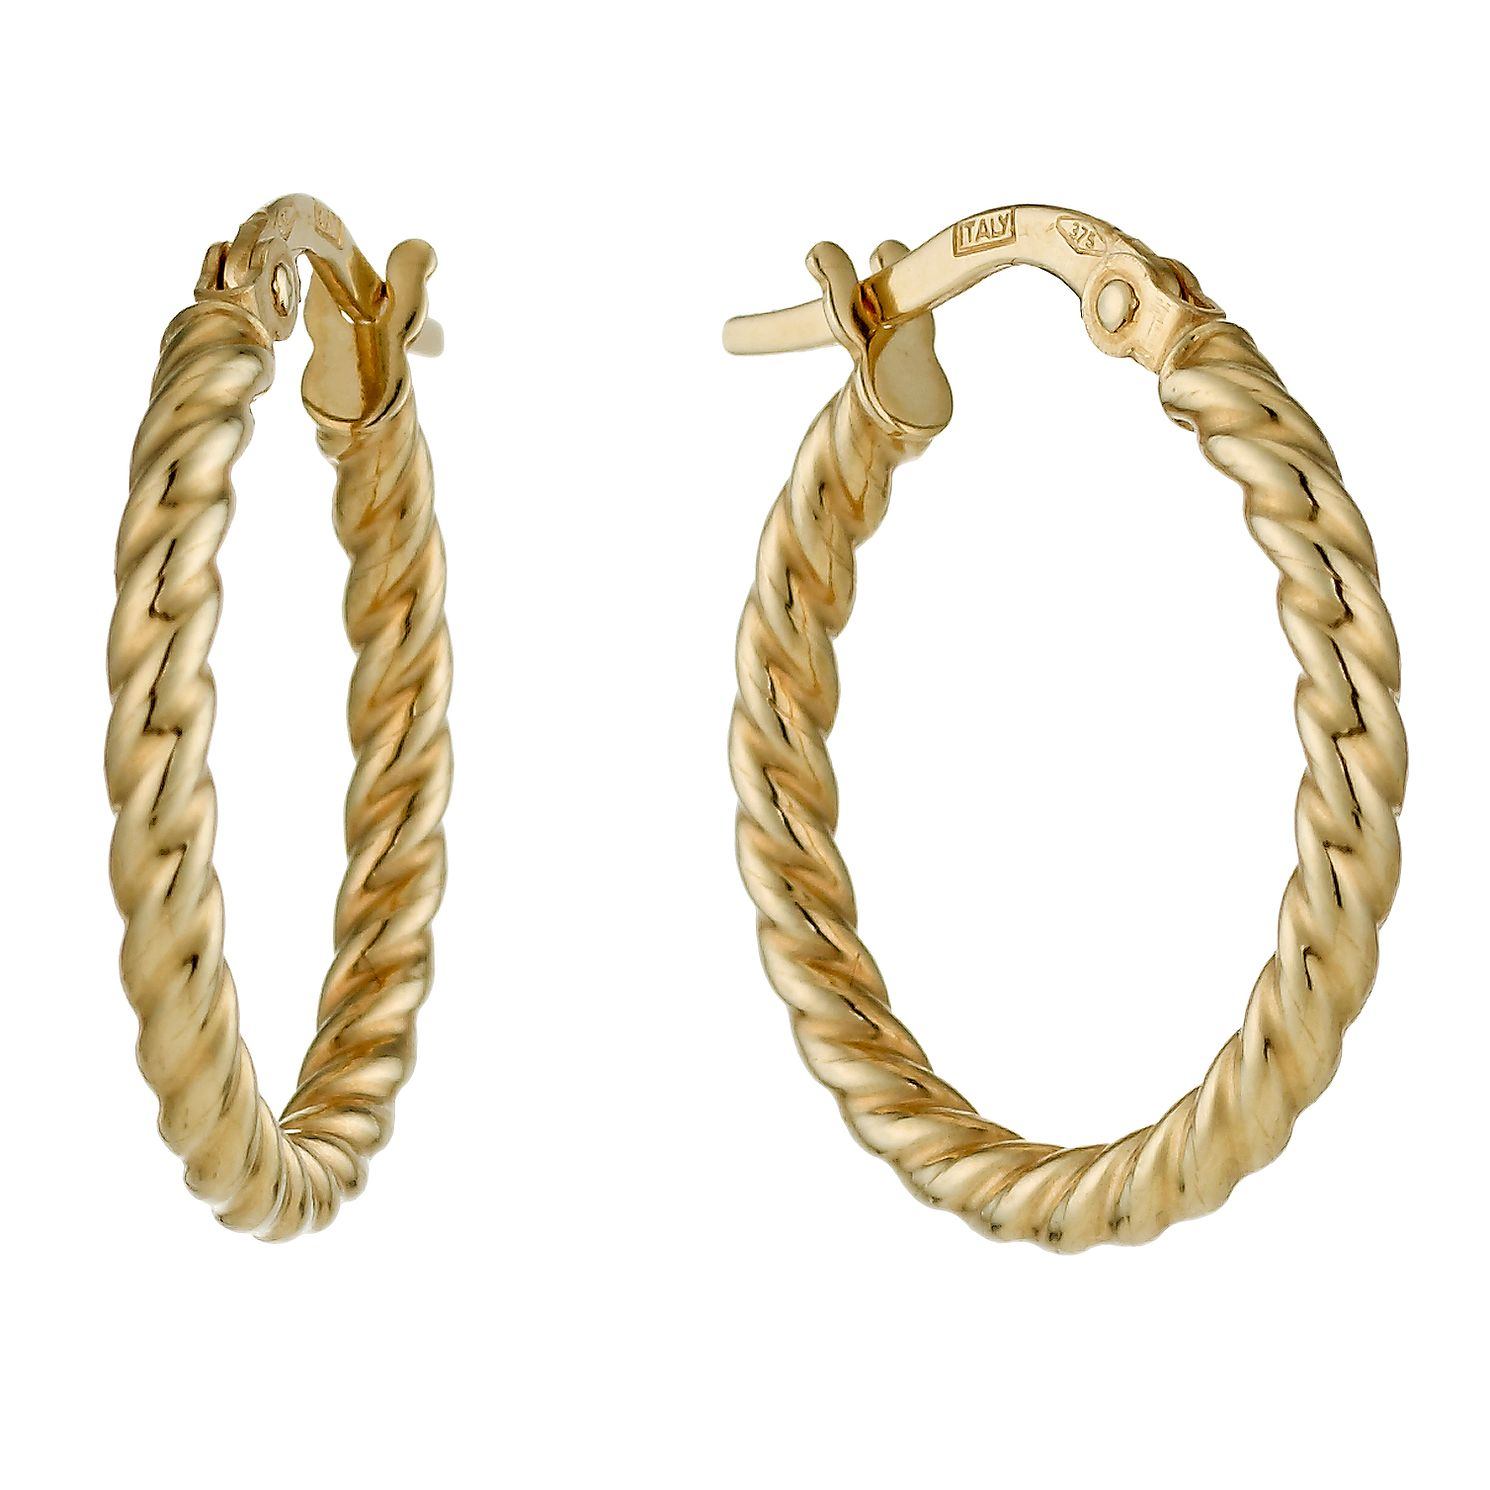 9ct Yellow Gold Twisted 15mm Hoop Earrings - Product number 1326198